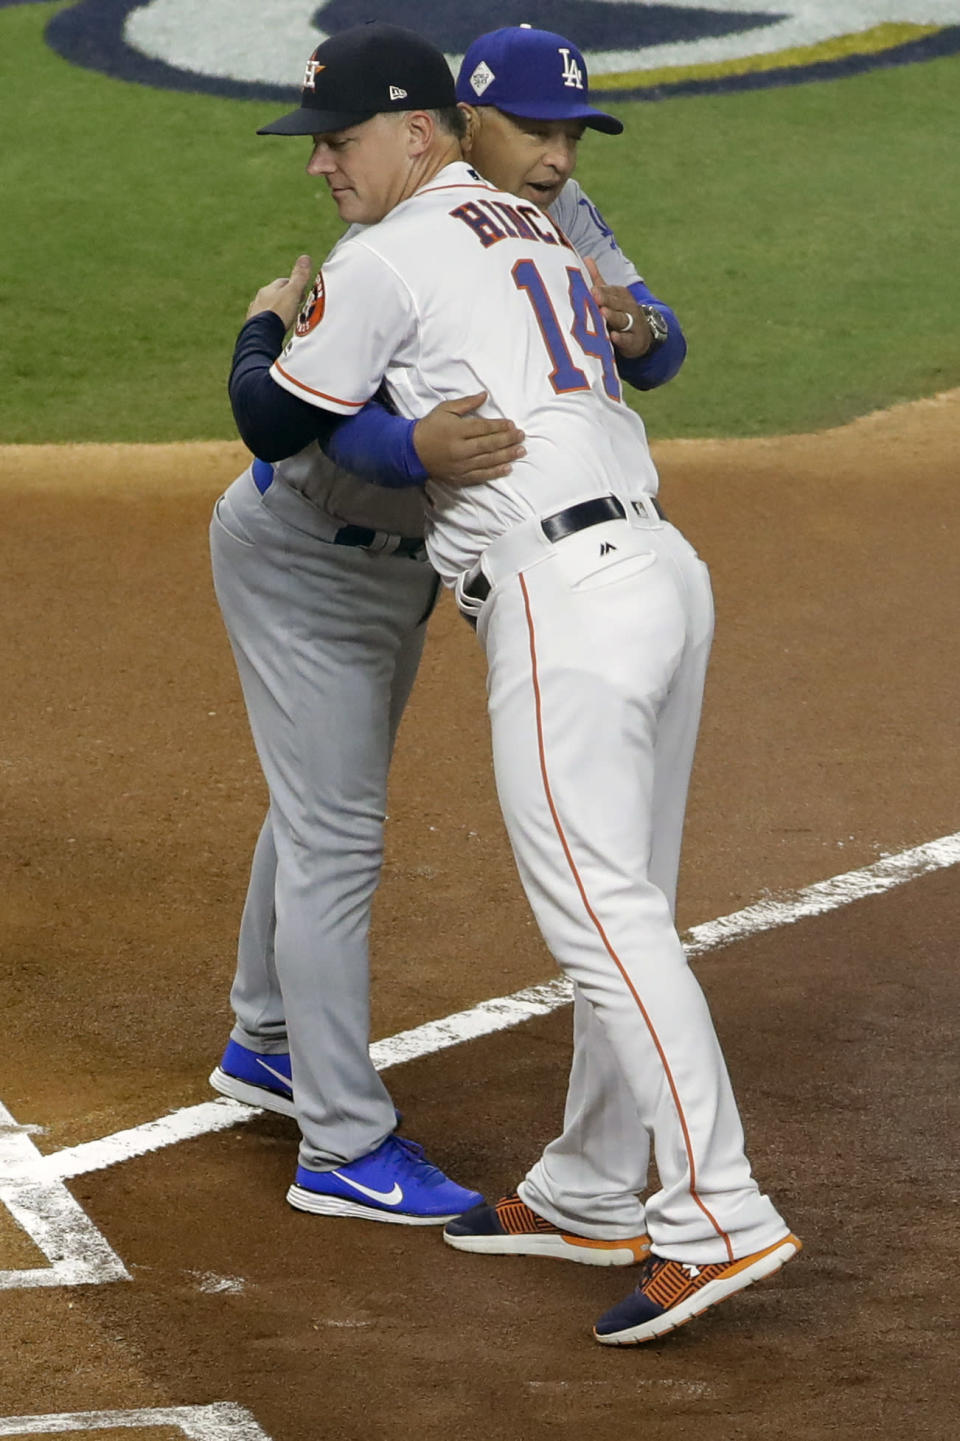 FILE - In this Oct. 27, 2017, file photo, Houston Astros manager A.J. Hinch hugs Los Angeles Dodgers manager Dave Roberts before Game 3 of baseball's World Series in Houston. Houston manager AJ Hinch and general manager Jeff Luhnow were suspended for the entire season Monday, Jan. 13, 2020, and the team was fined $5 million for sign-stealing by the team in 2017 and 2018 season. Commissioner Rob Manfred announced the discipline and strongly hinted that current Boston manager Alex Cora the Astros bench coach in 2017 will face punishment later. Manfred said Cora developed the sign-stealing system used by the Astros. (AP Photo/David J. Phillip, File)